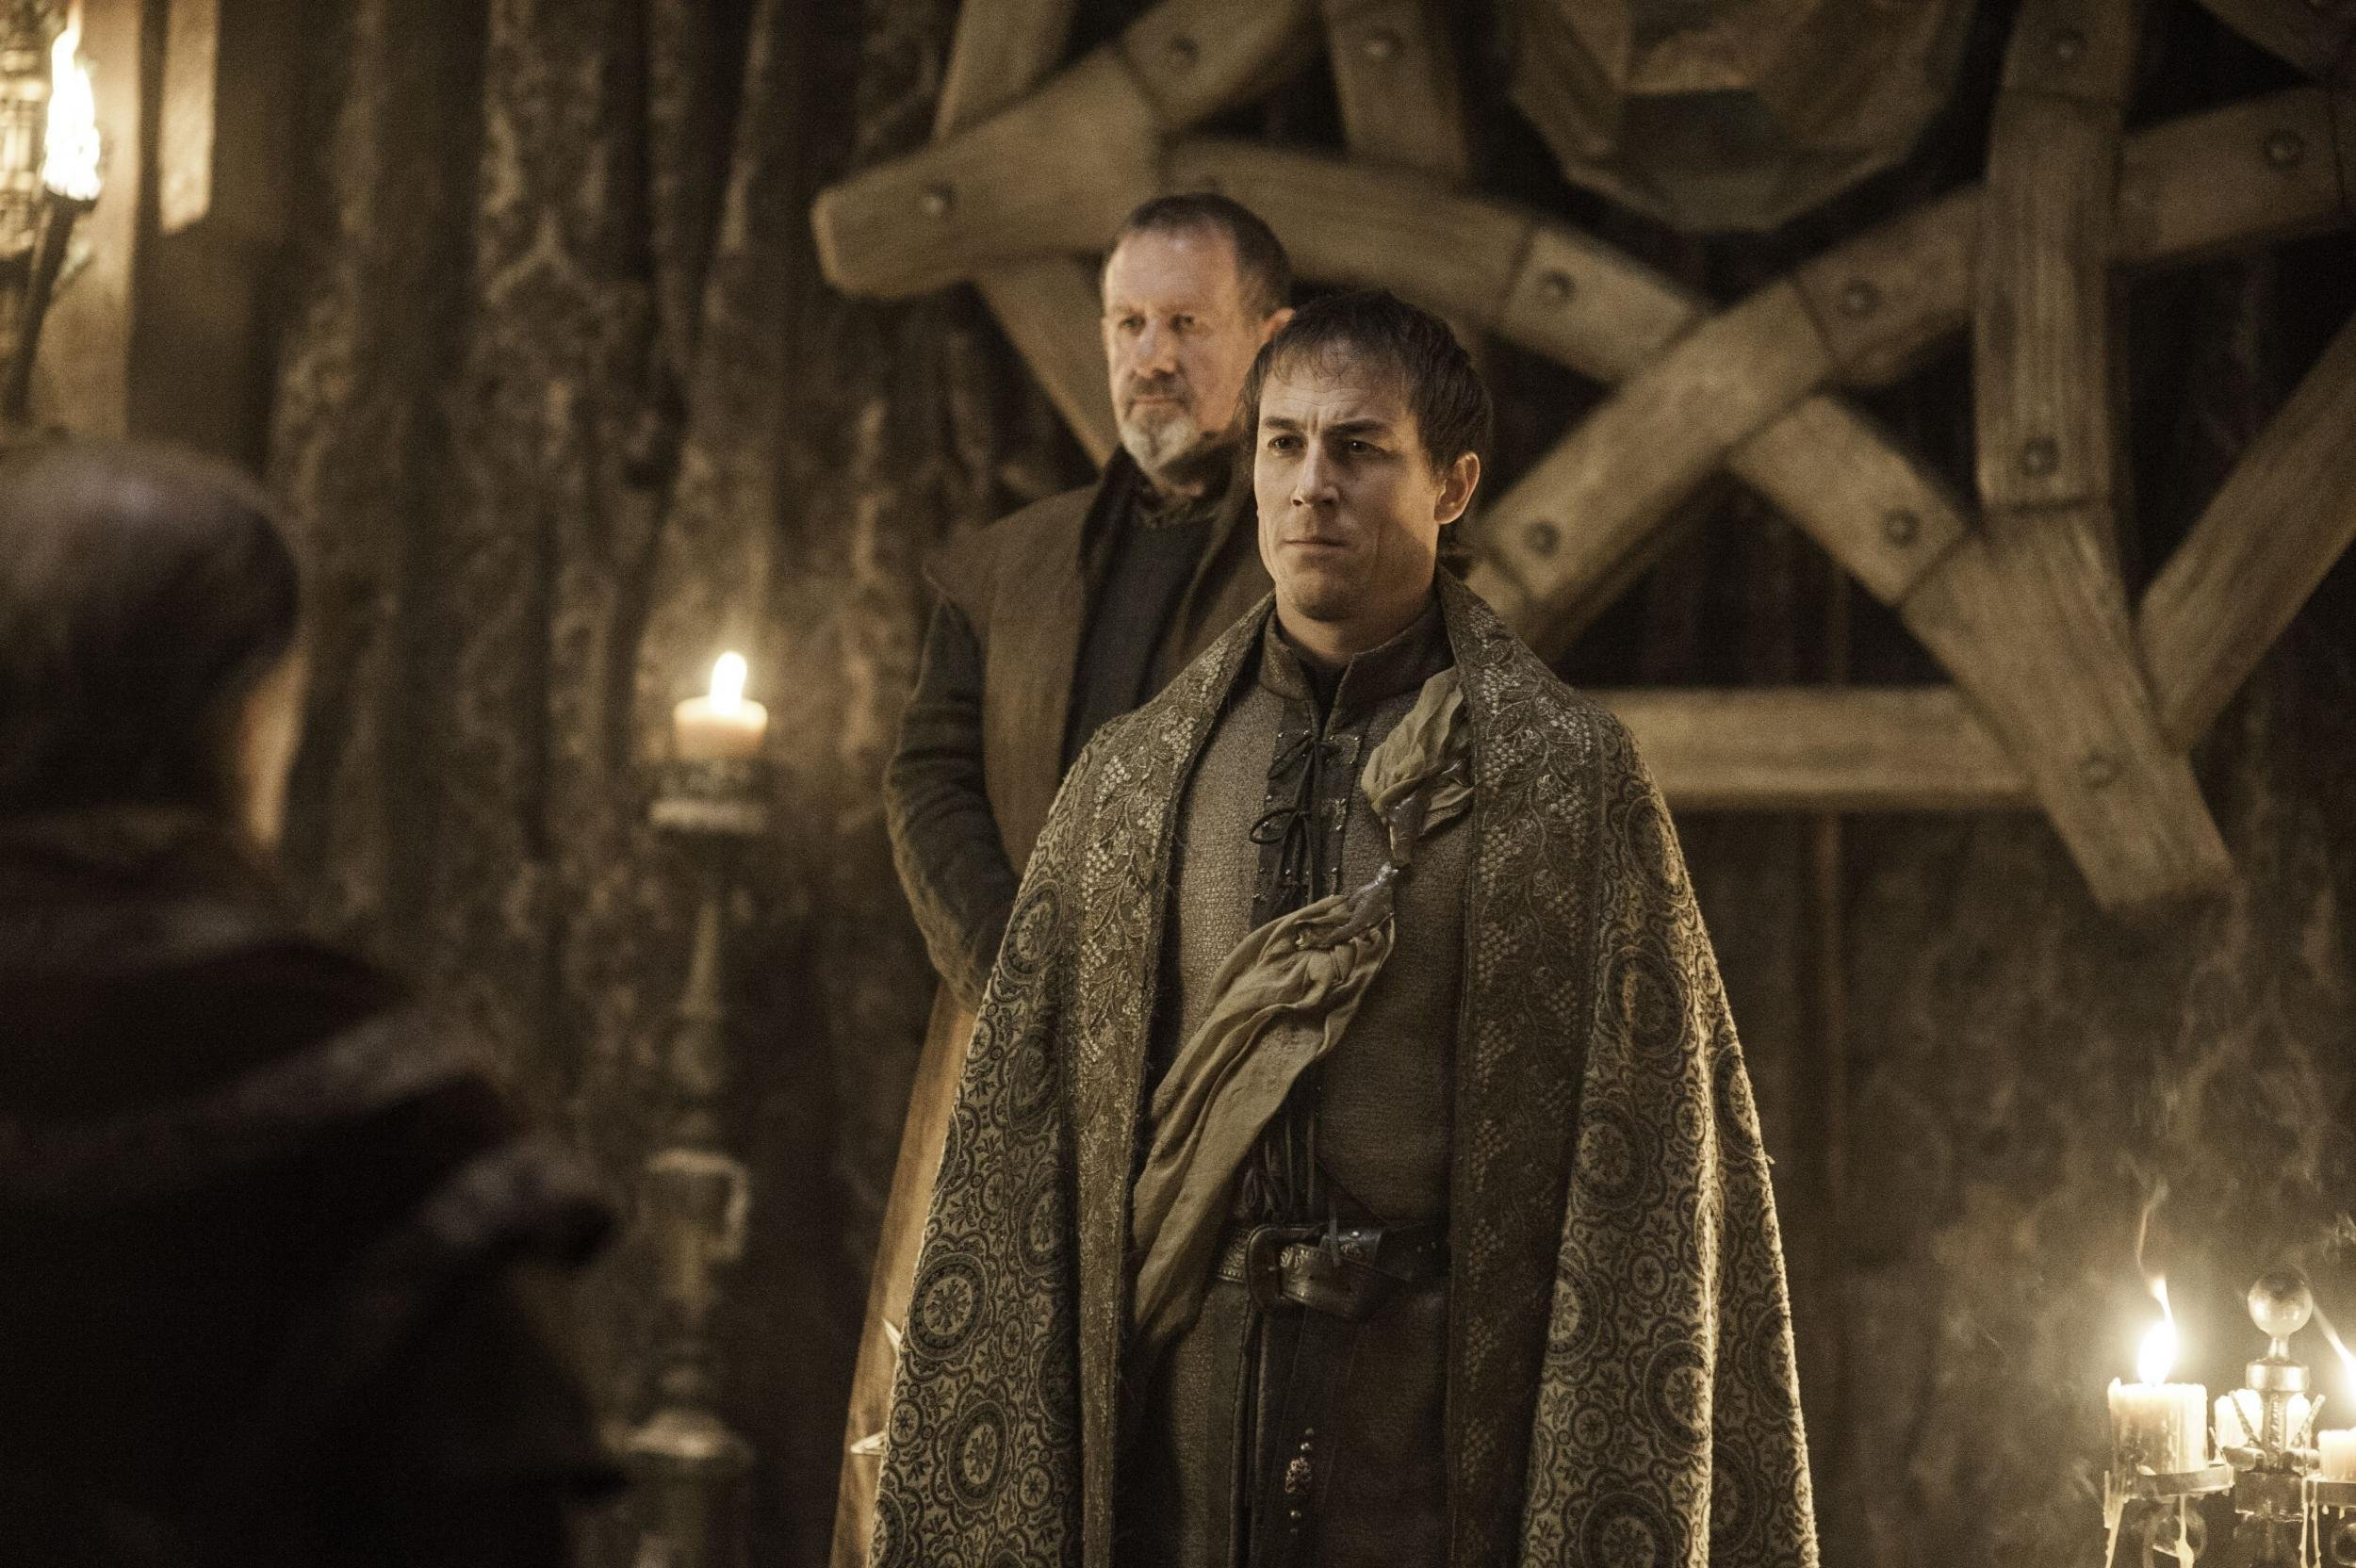 'Game of Thrones' Finale: HBO Boss Shoots Down Arya Spinoff Hopes